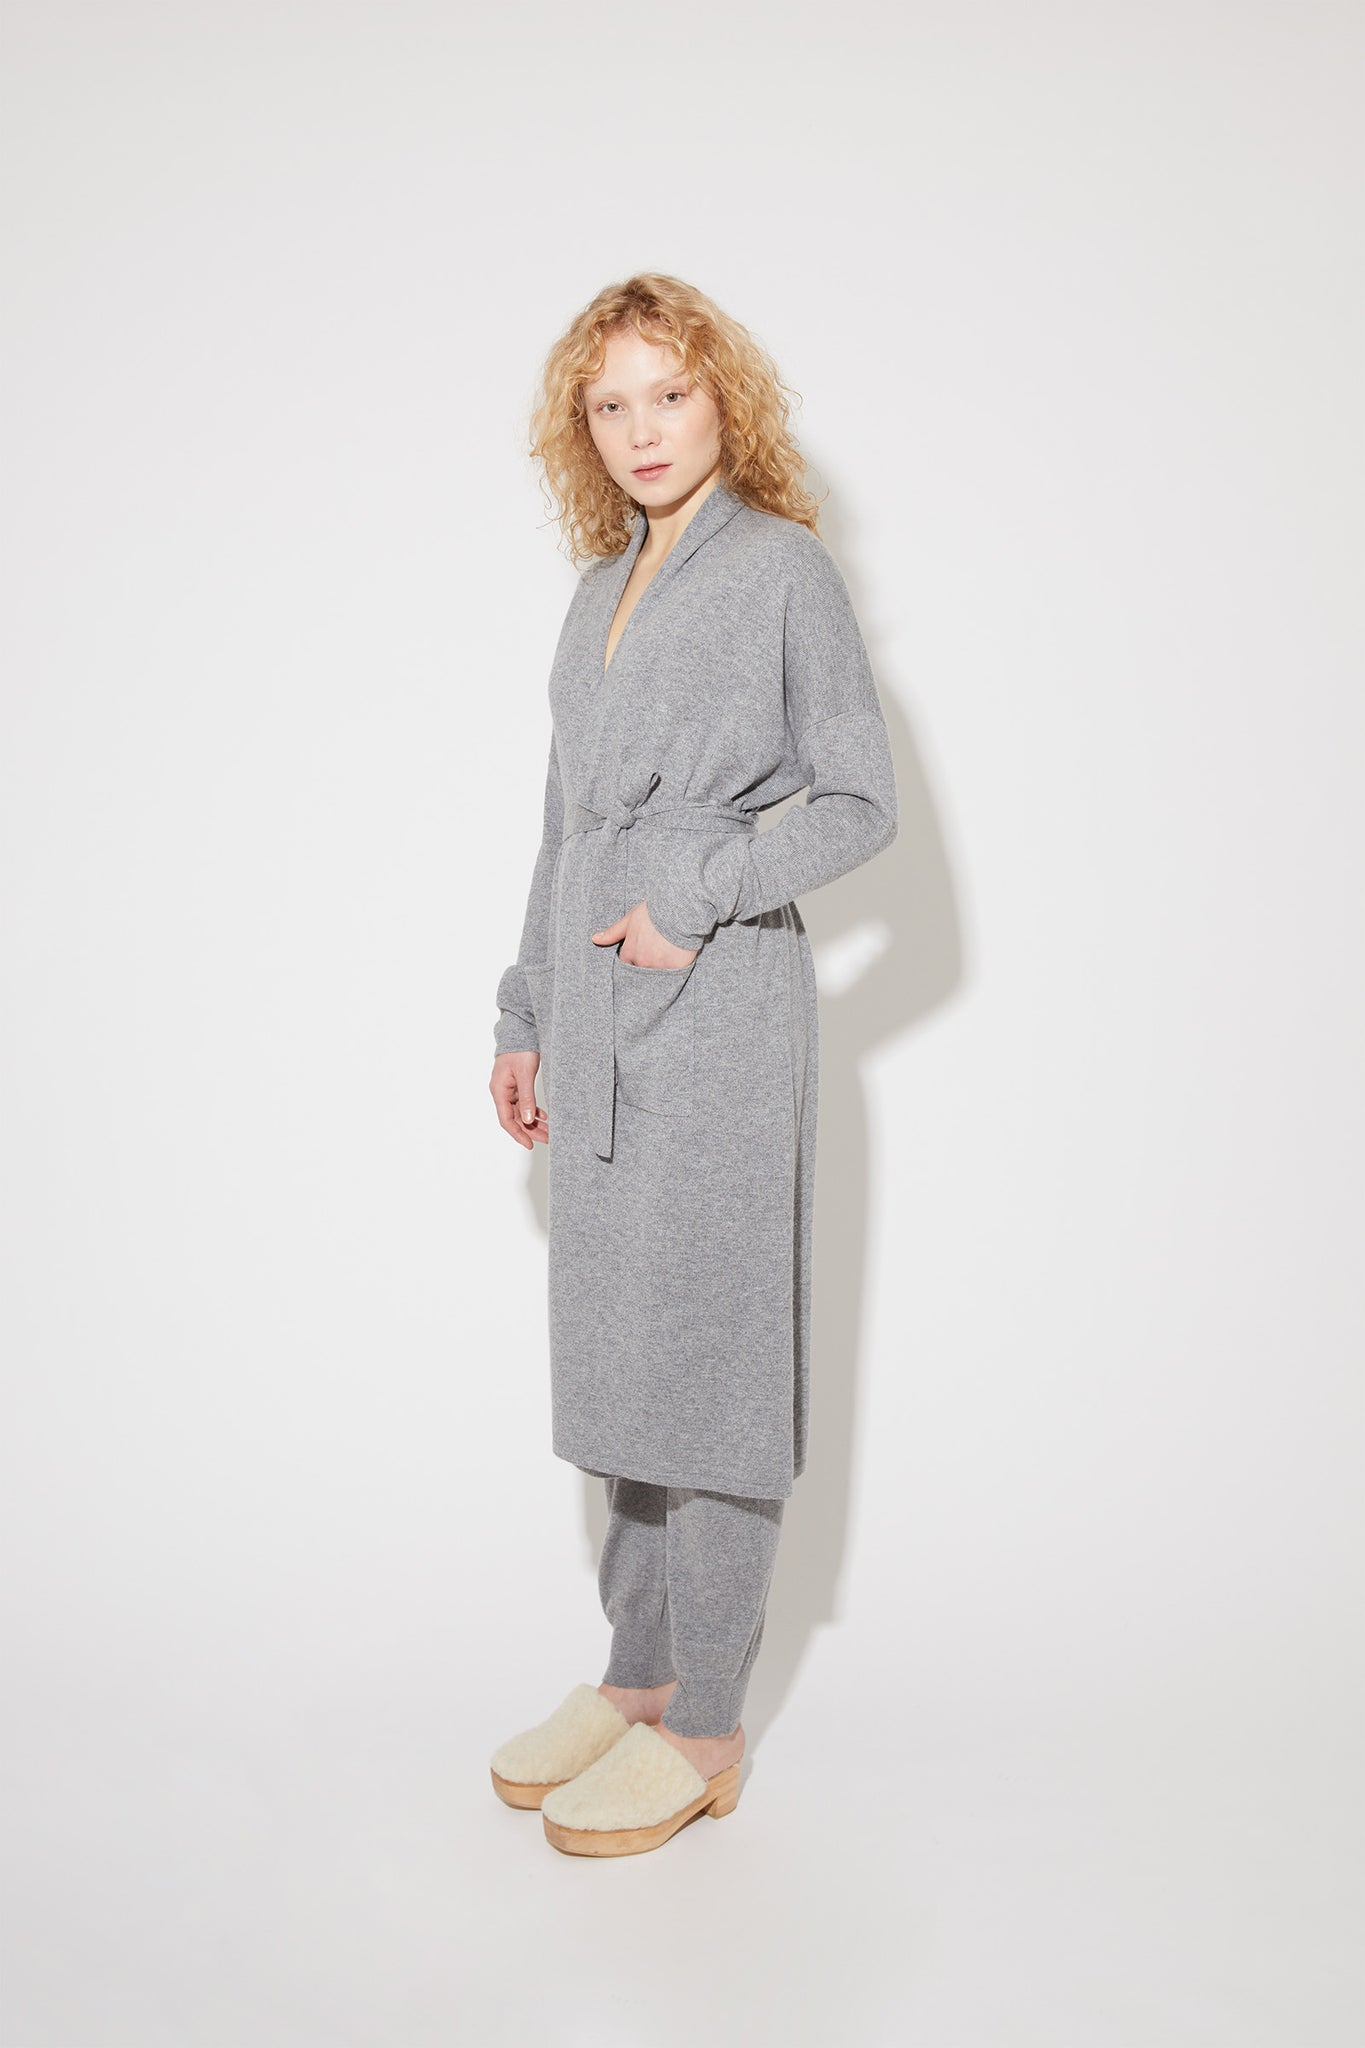 Haru robe in grey